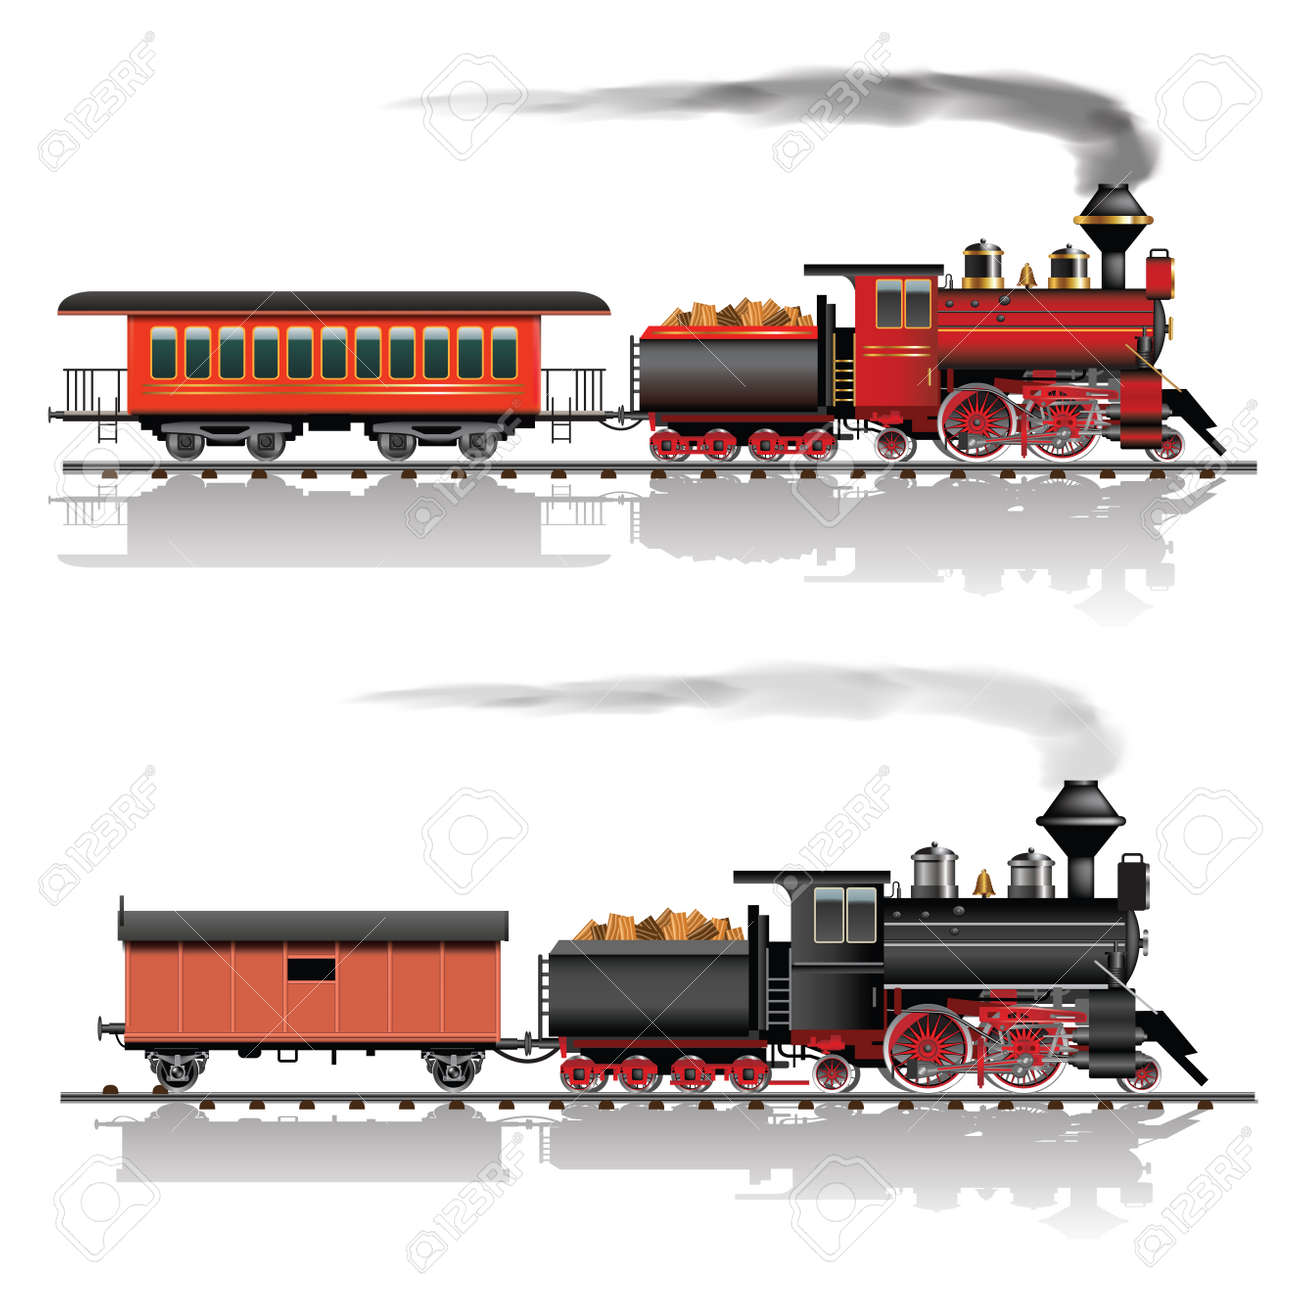 Old american steam locomotive. Passenger and freight wagon. Vector illustration - 43066459